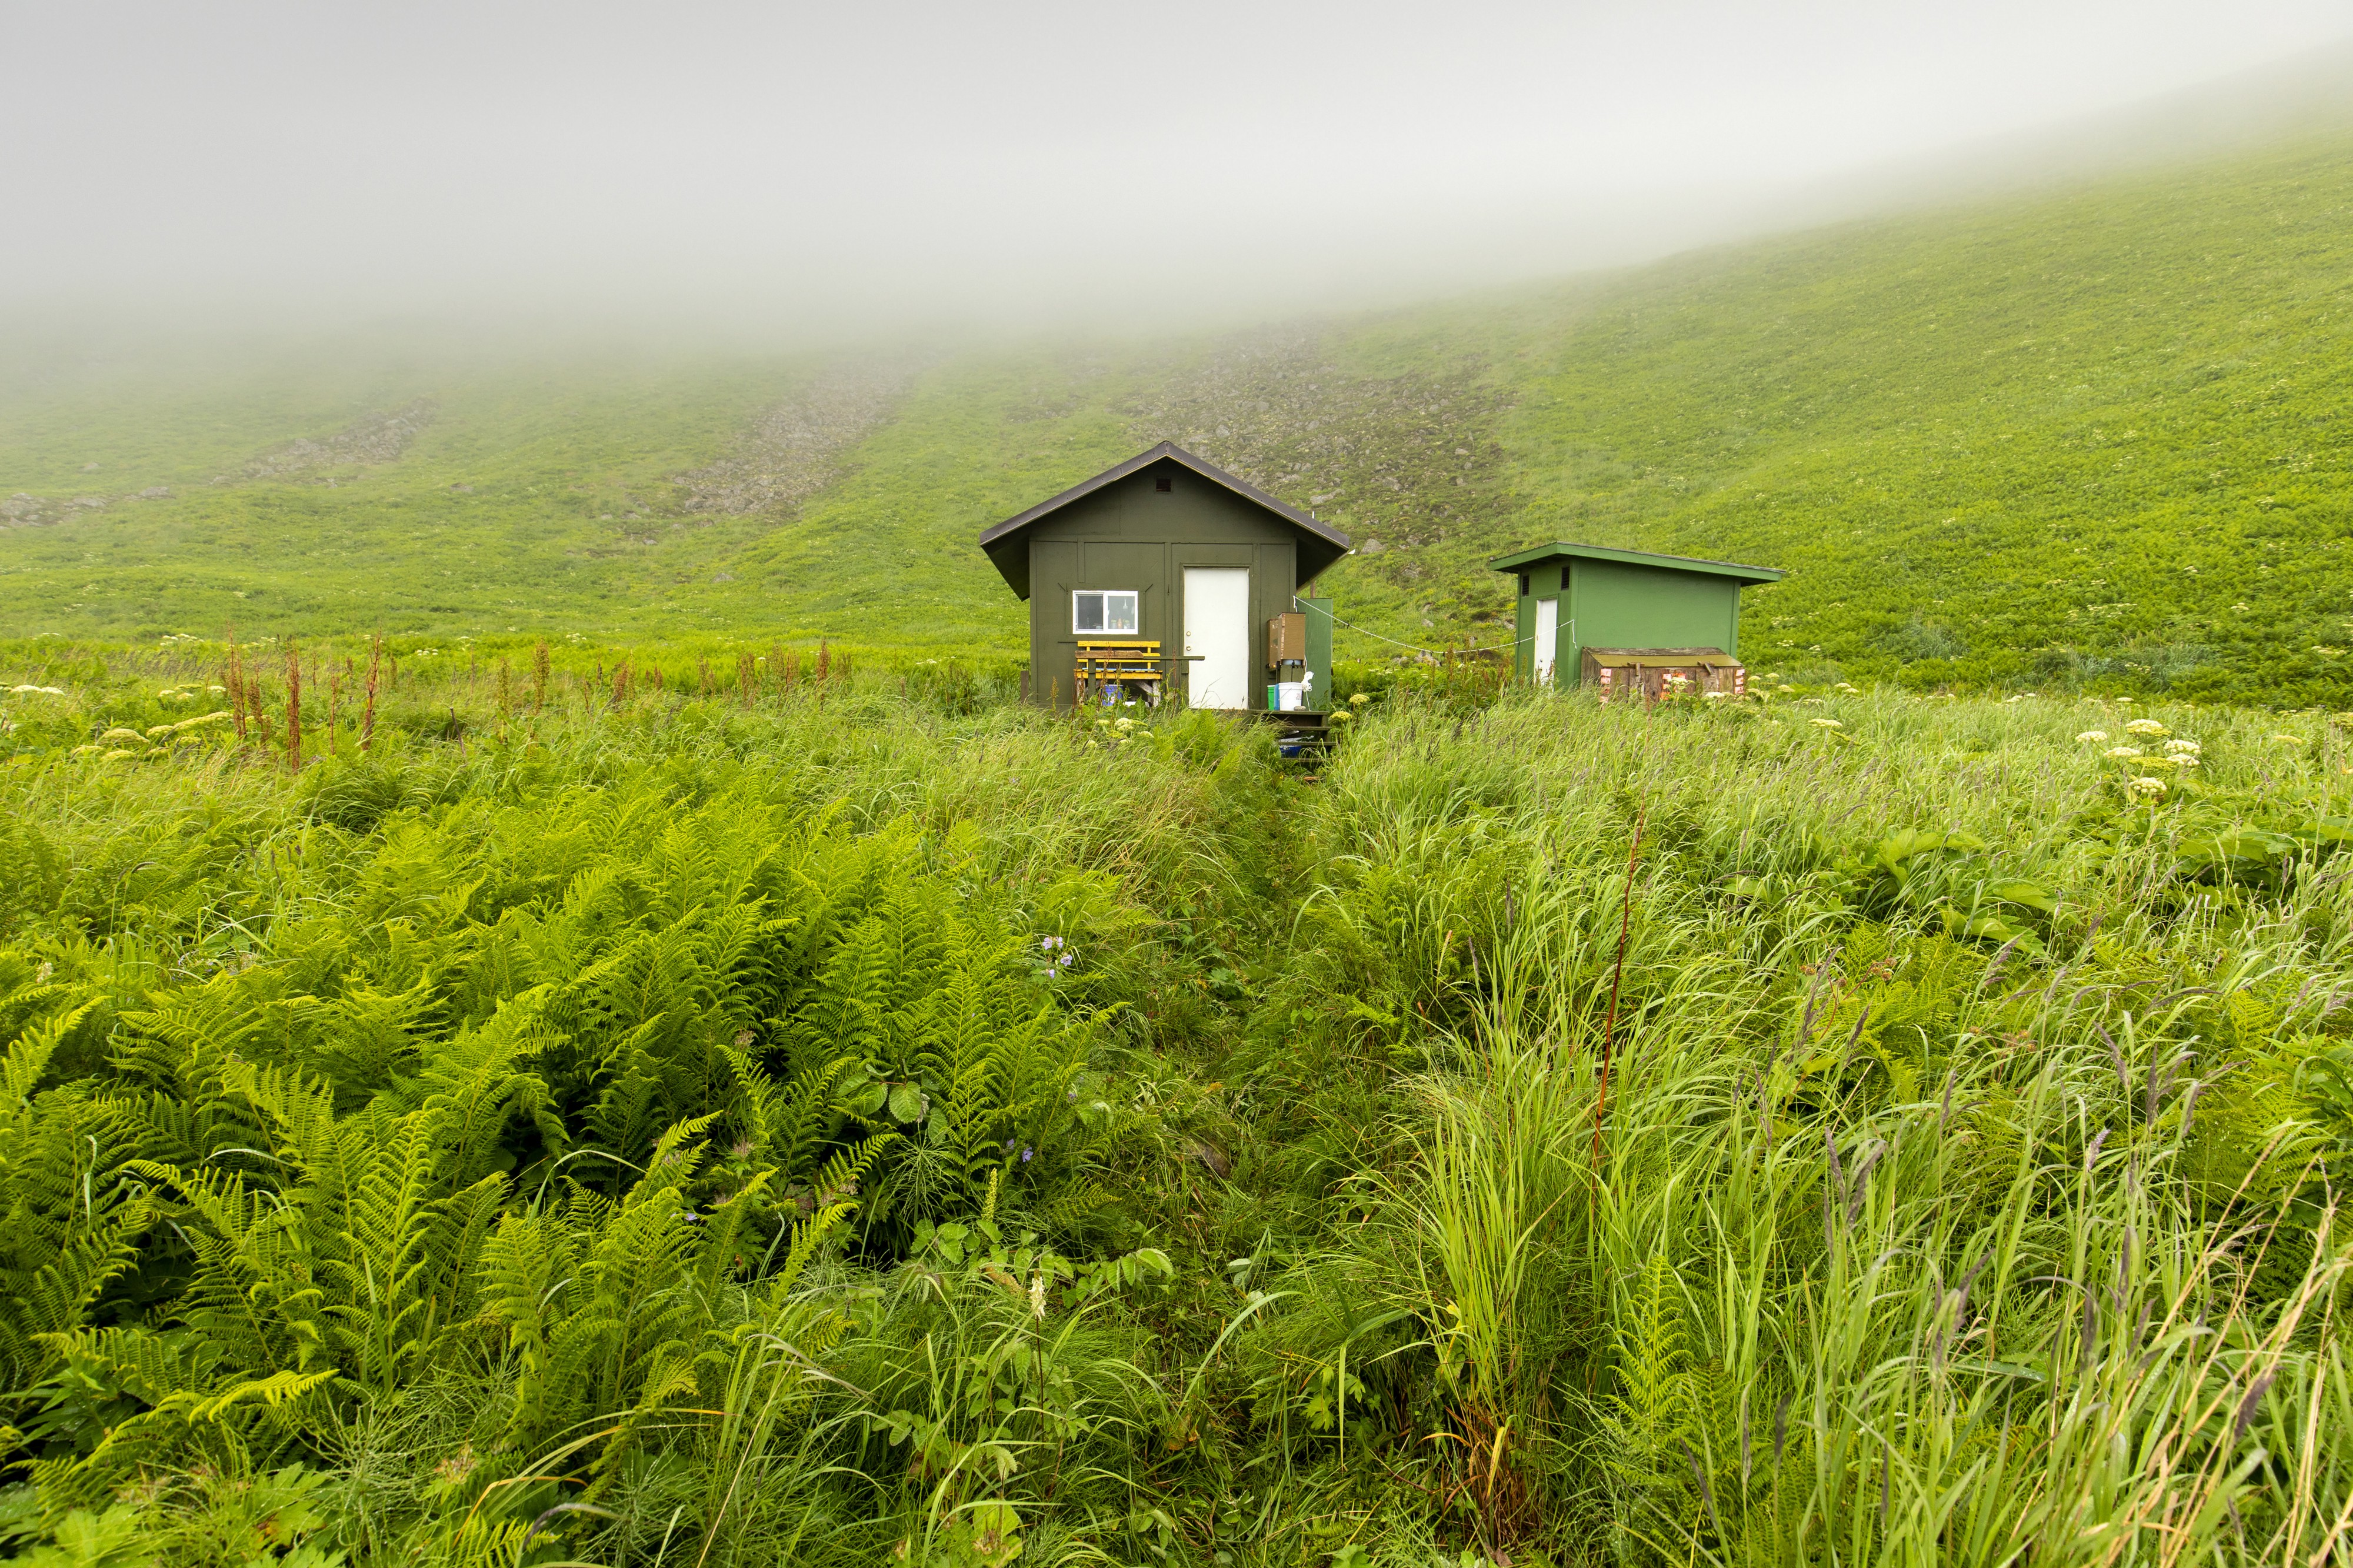 A small green cabin and outbuilding nestled in dense green grass and ferns with fog just overhead.